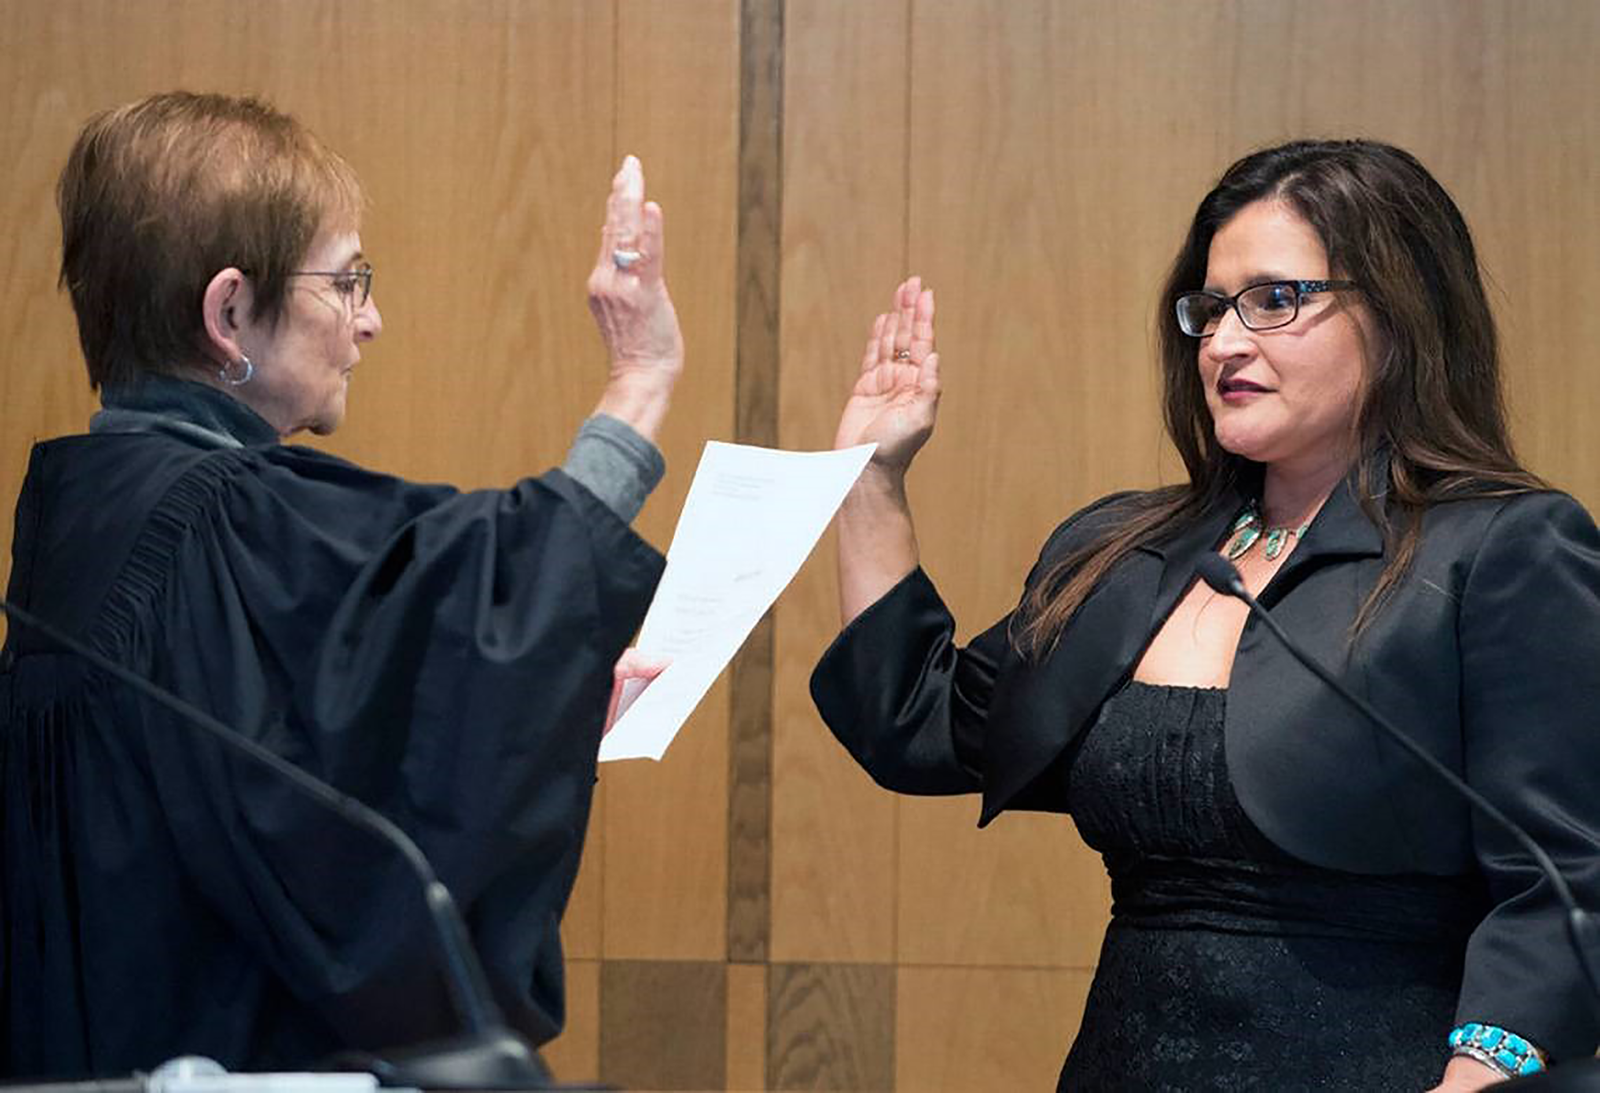 Swearing in Judge Raquel Montaya-Lewis to the Whatcom County Superior Court, January 16, 2015.